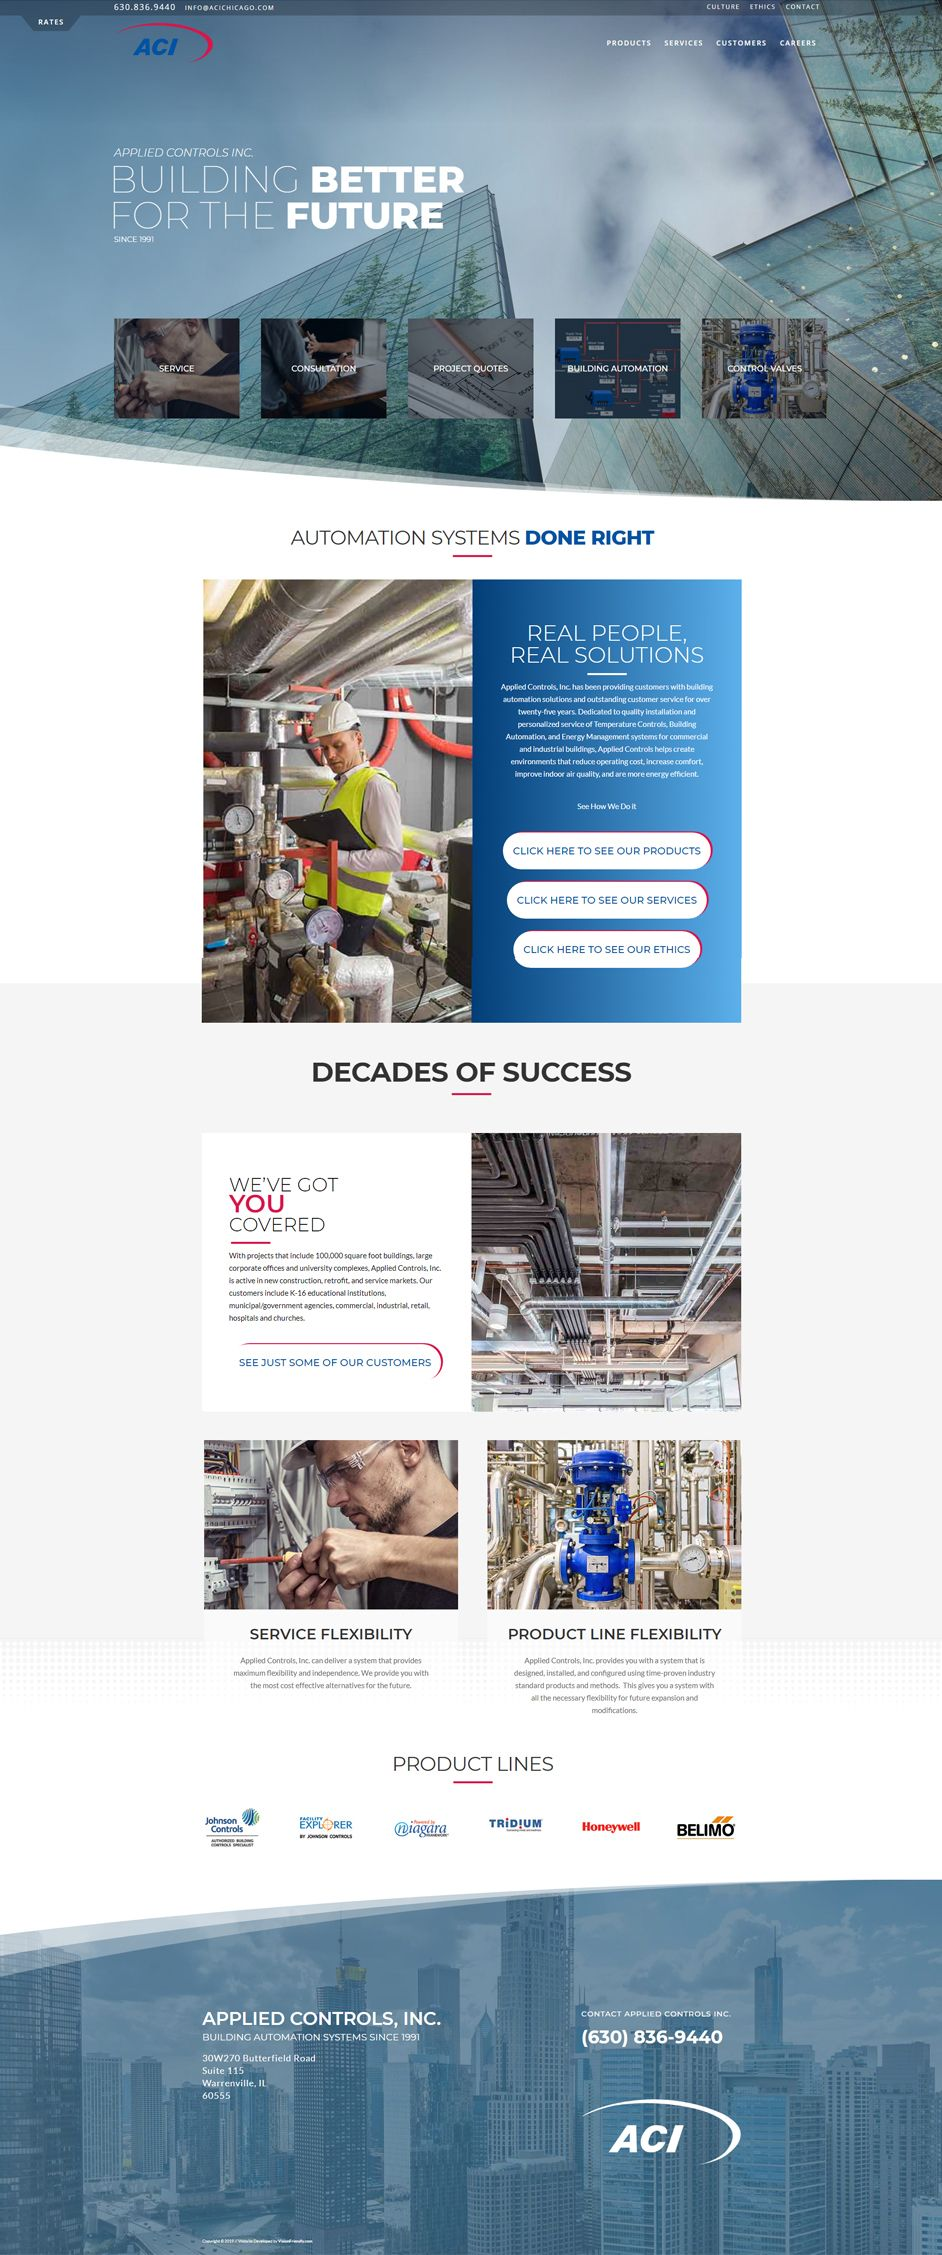 Website For Applied Controls Inc Aci By Visionfriendly Com Controldesign Featuredproducts Featuredservices Webd Web Design Responsive Design Naperville